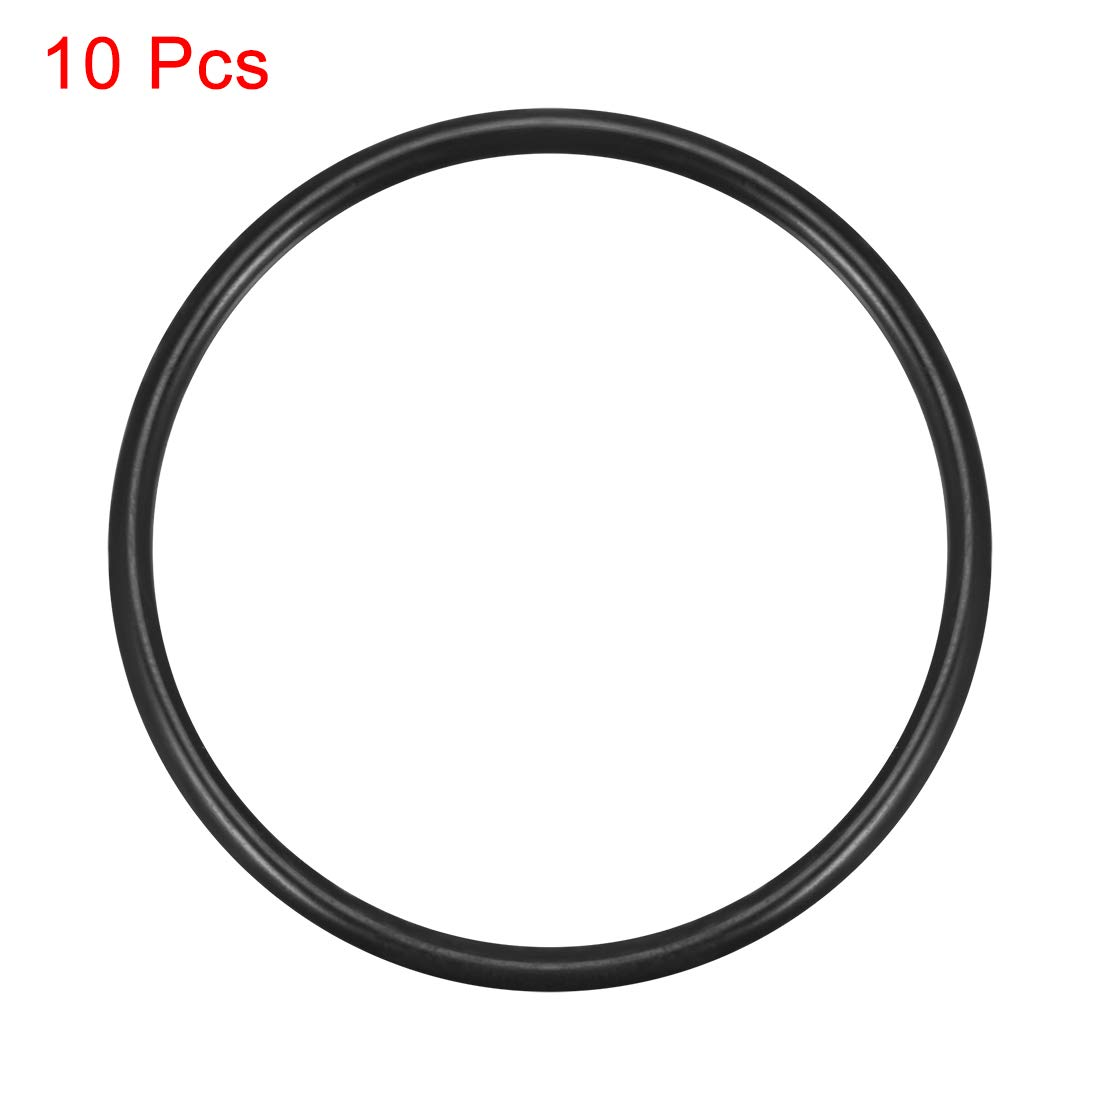 Joint torique caoutchouc nitrile ID 63mm OD 70mm large 3.5mm joint rond 5pc